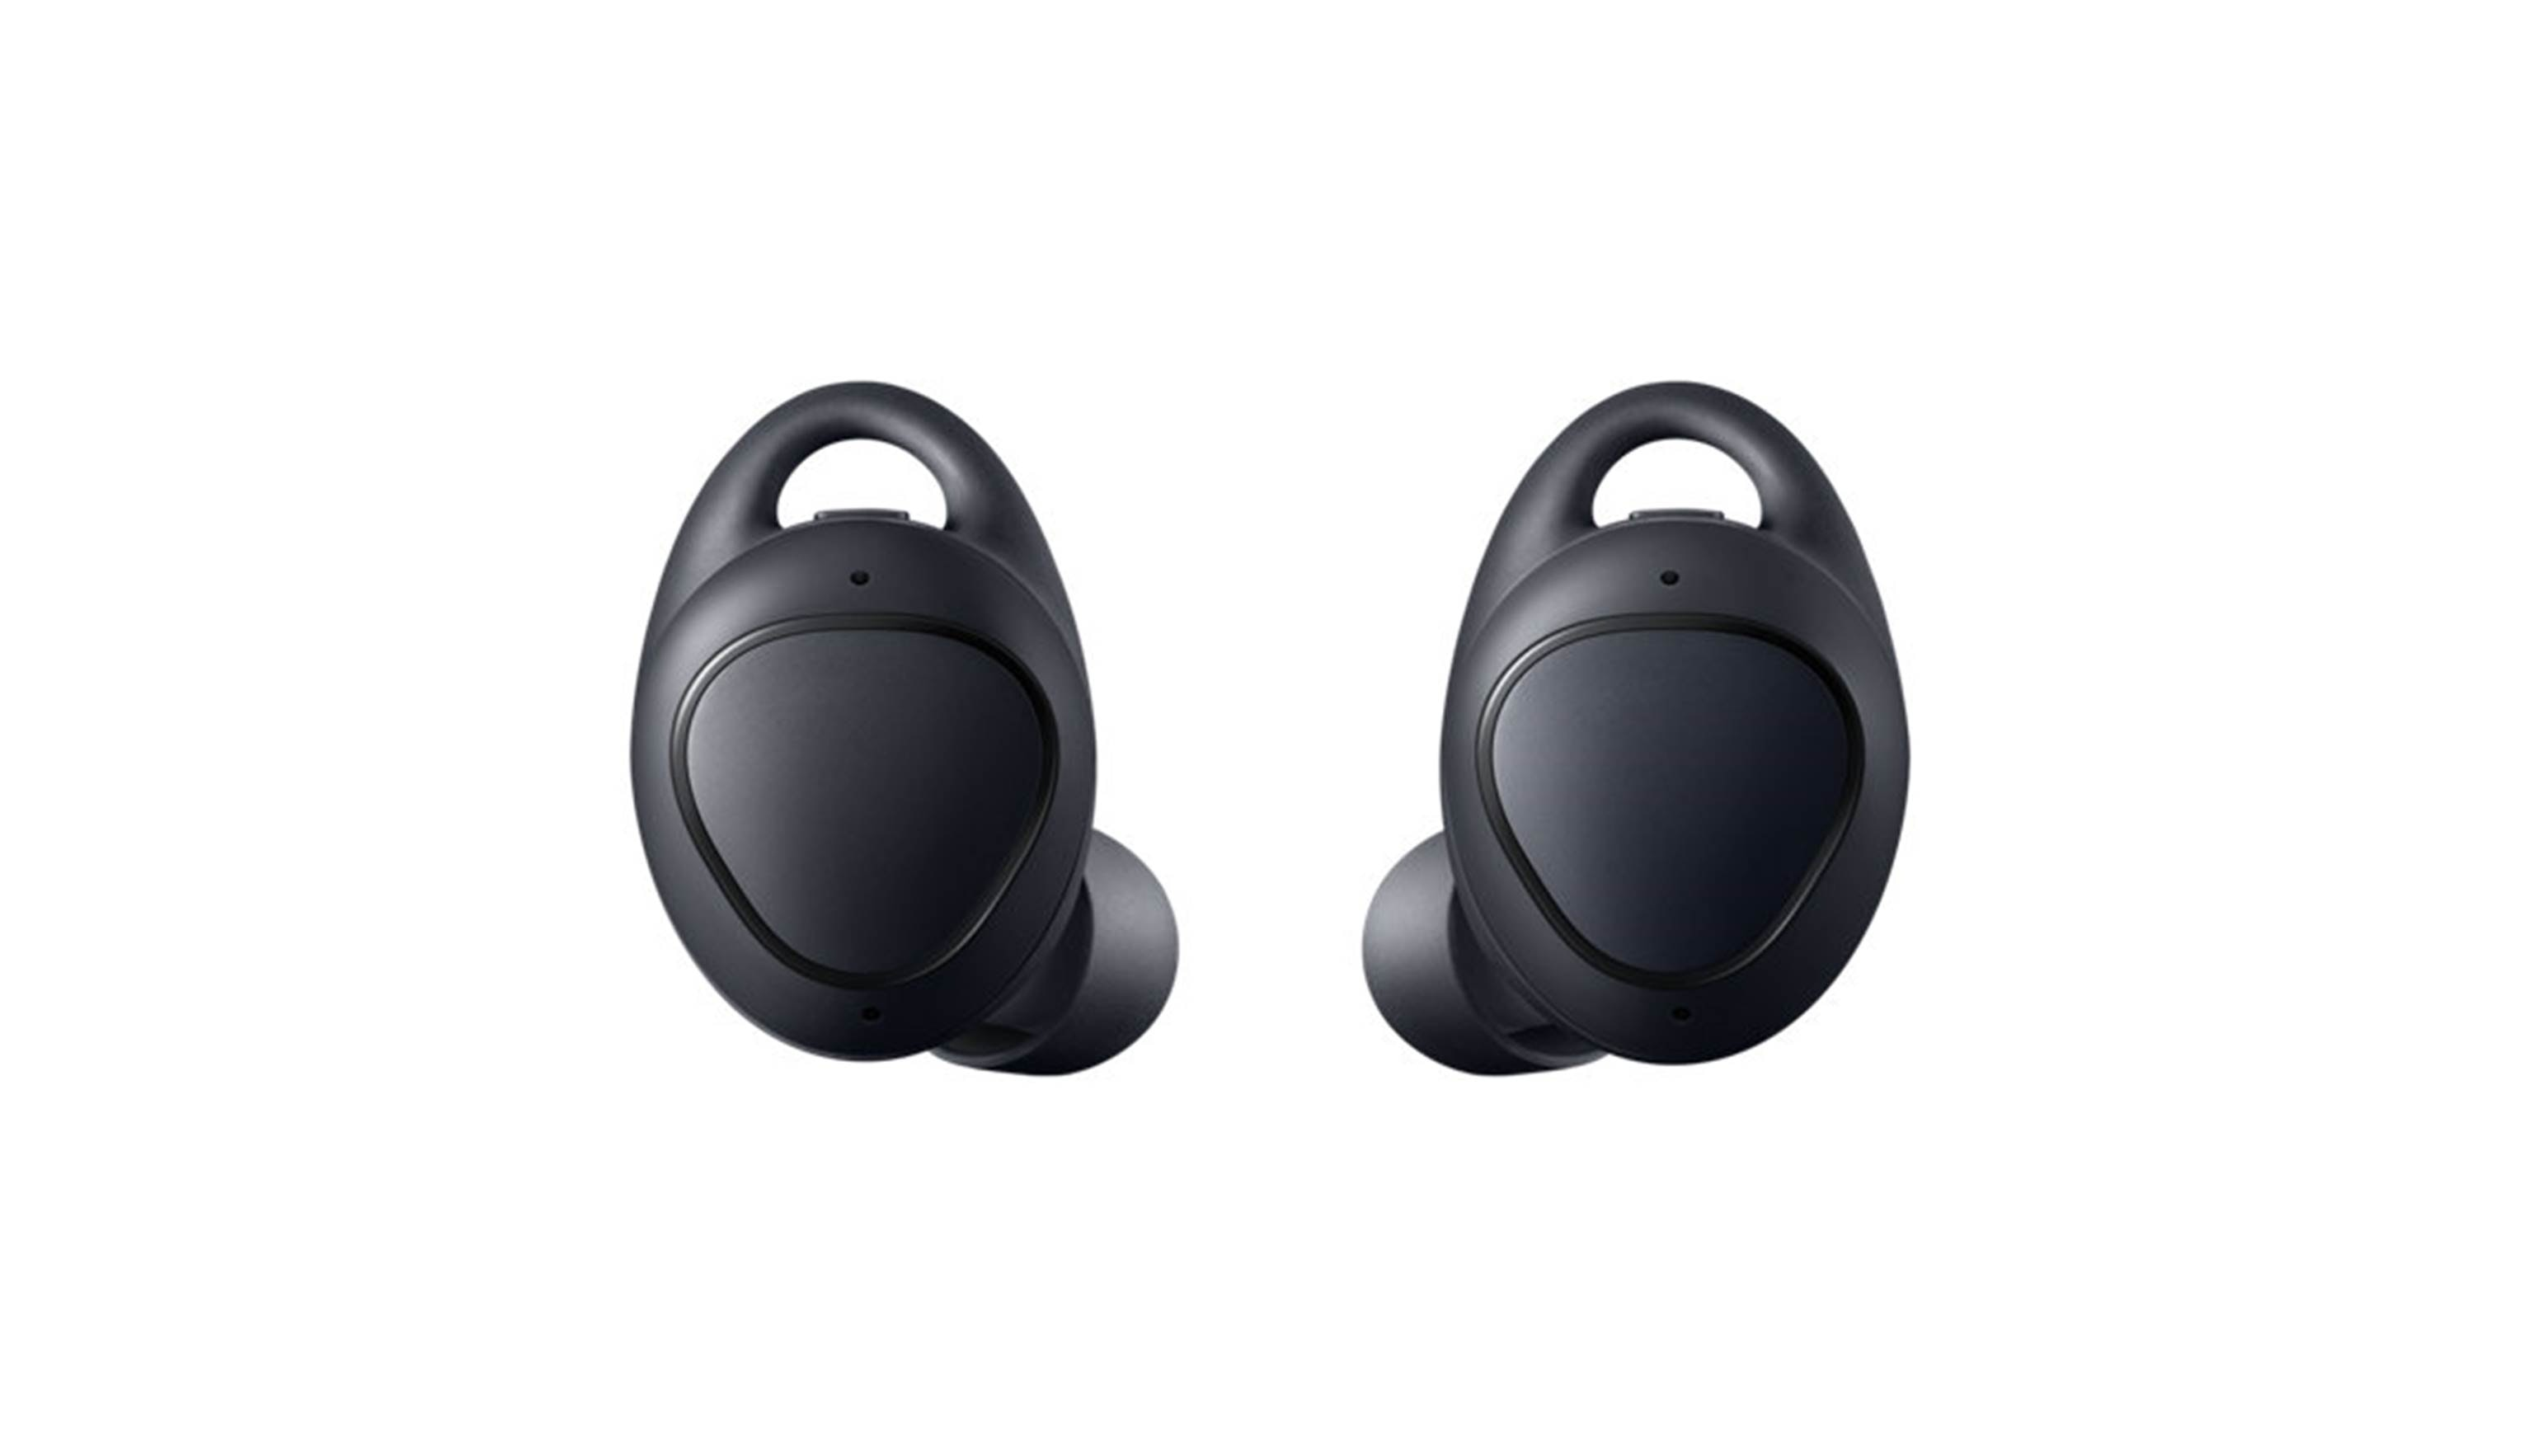 Samsung Gear IconX 2018 - Black (2)